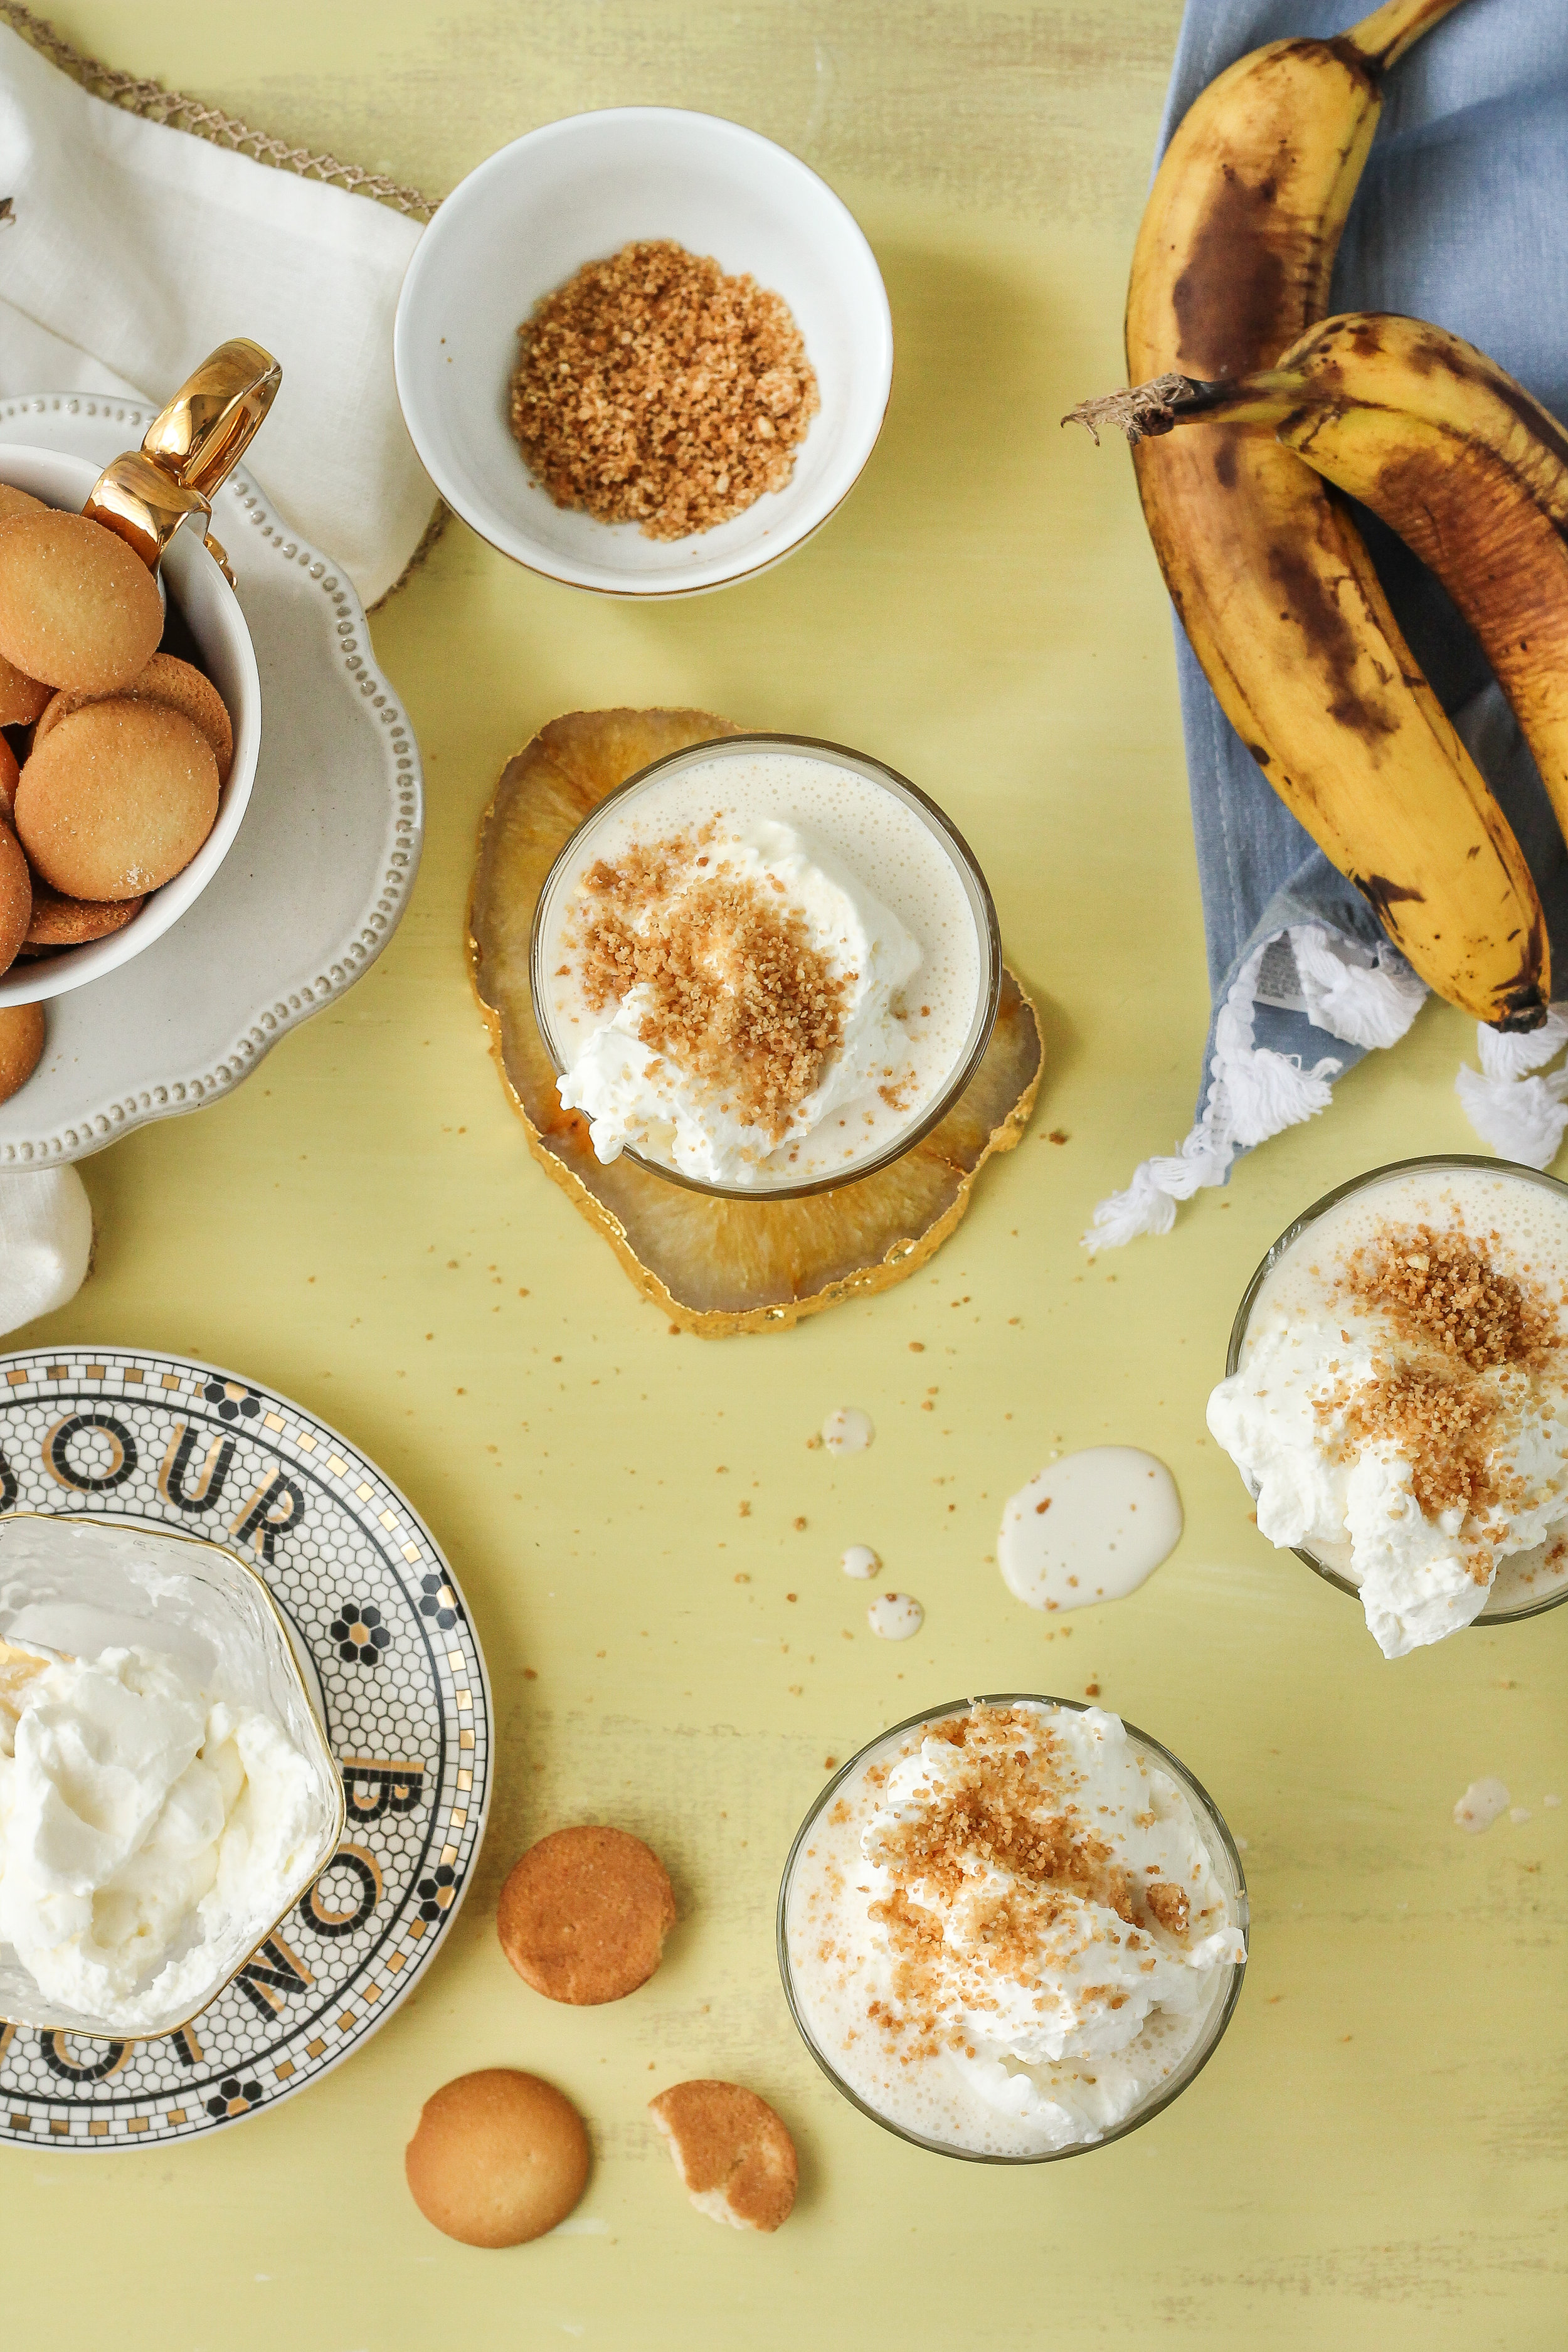 Craving banana pudding but do not have time for all that whipping, slicing, and layering?  These banana pudding shakes are the perfect quick and simple way to satisfy your cravings!  Find this recipe and so many more on WWW.PEDANTICFOODIE.COM!